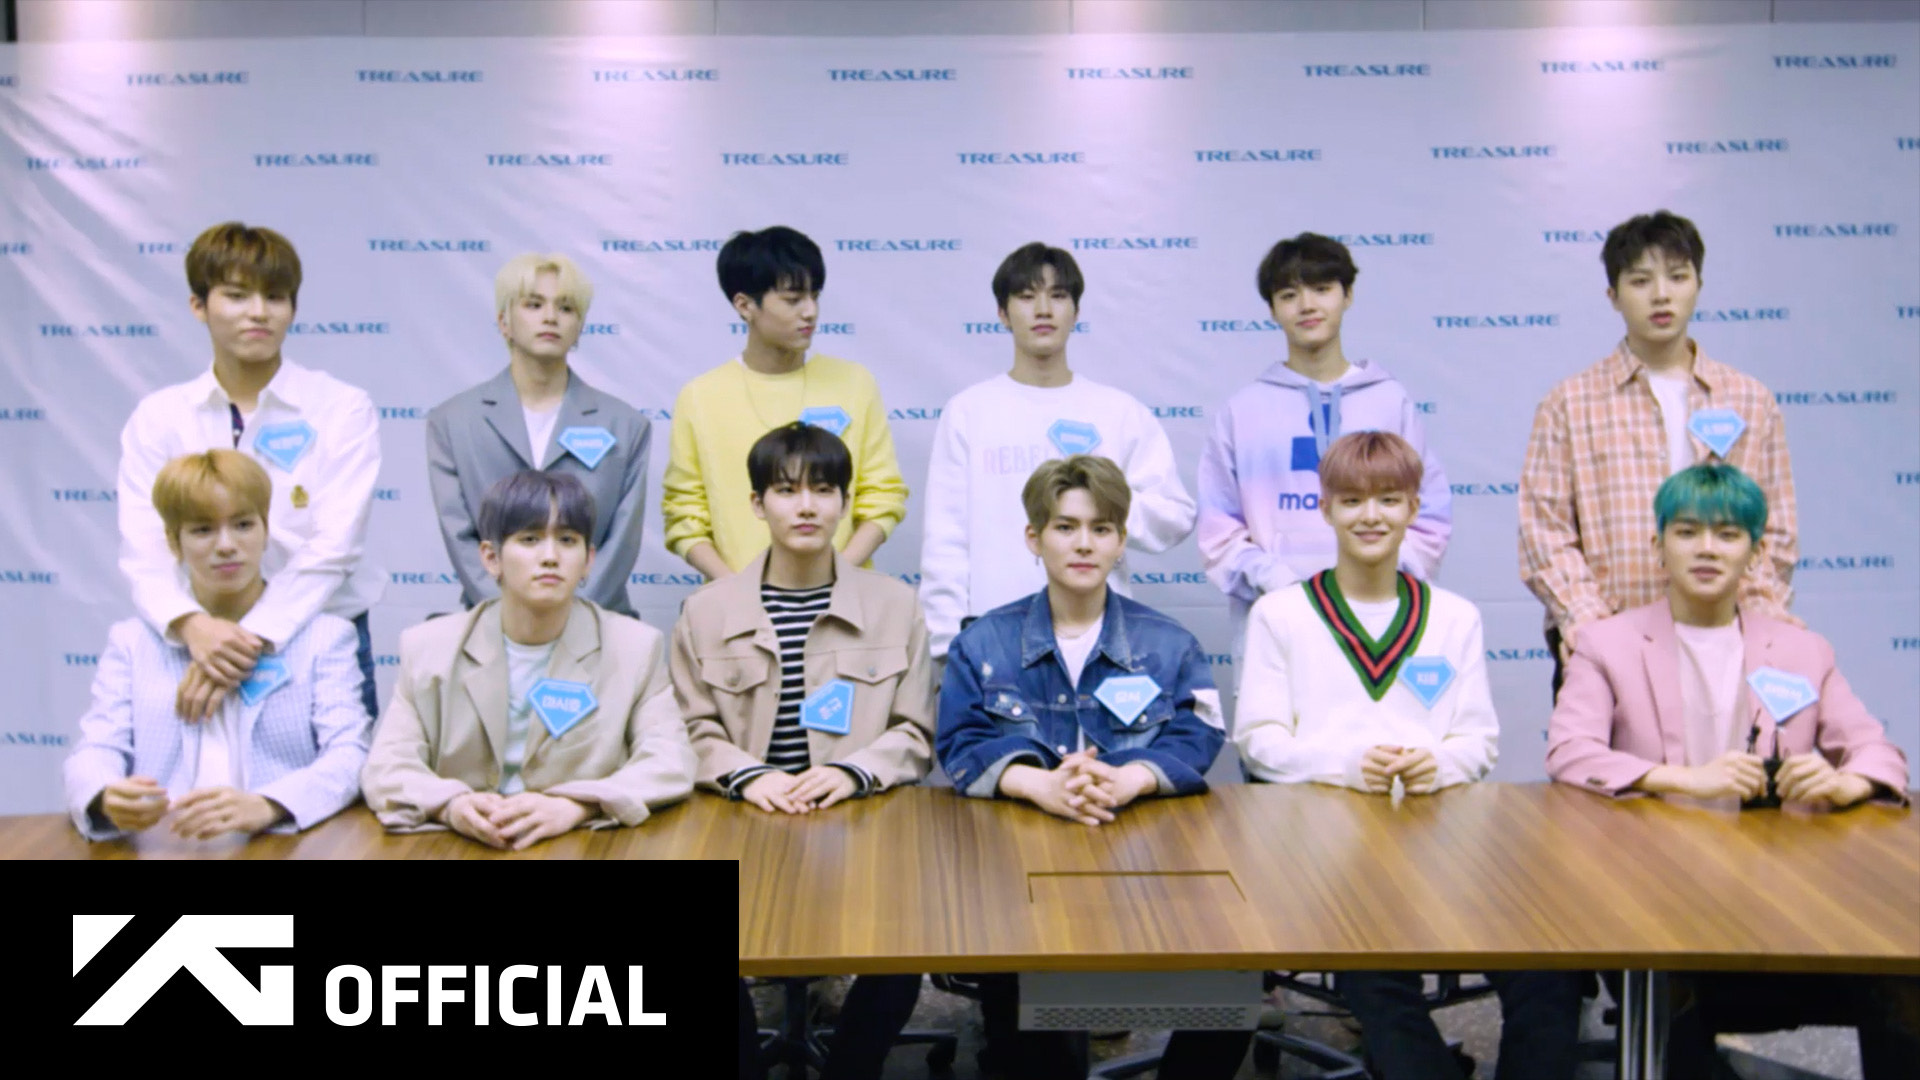 TREASURE - [THE FIRST STEP : CHAPTER ONE] ONLINE FANSIGNING EVENT